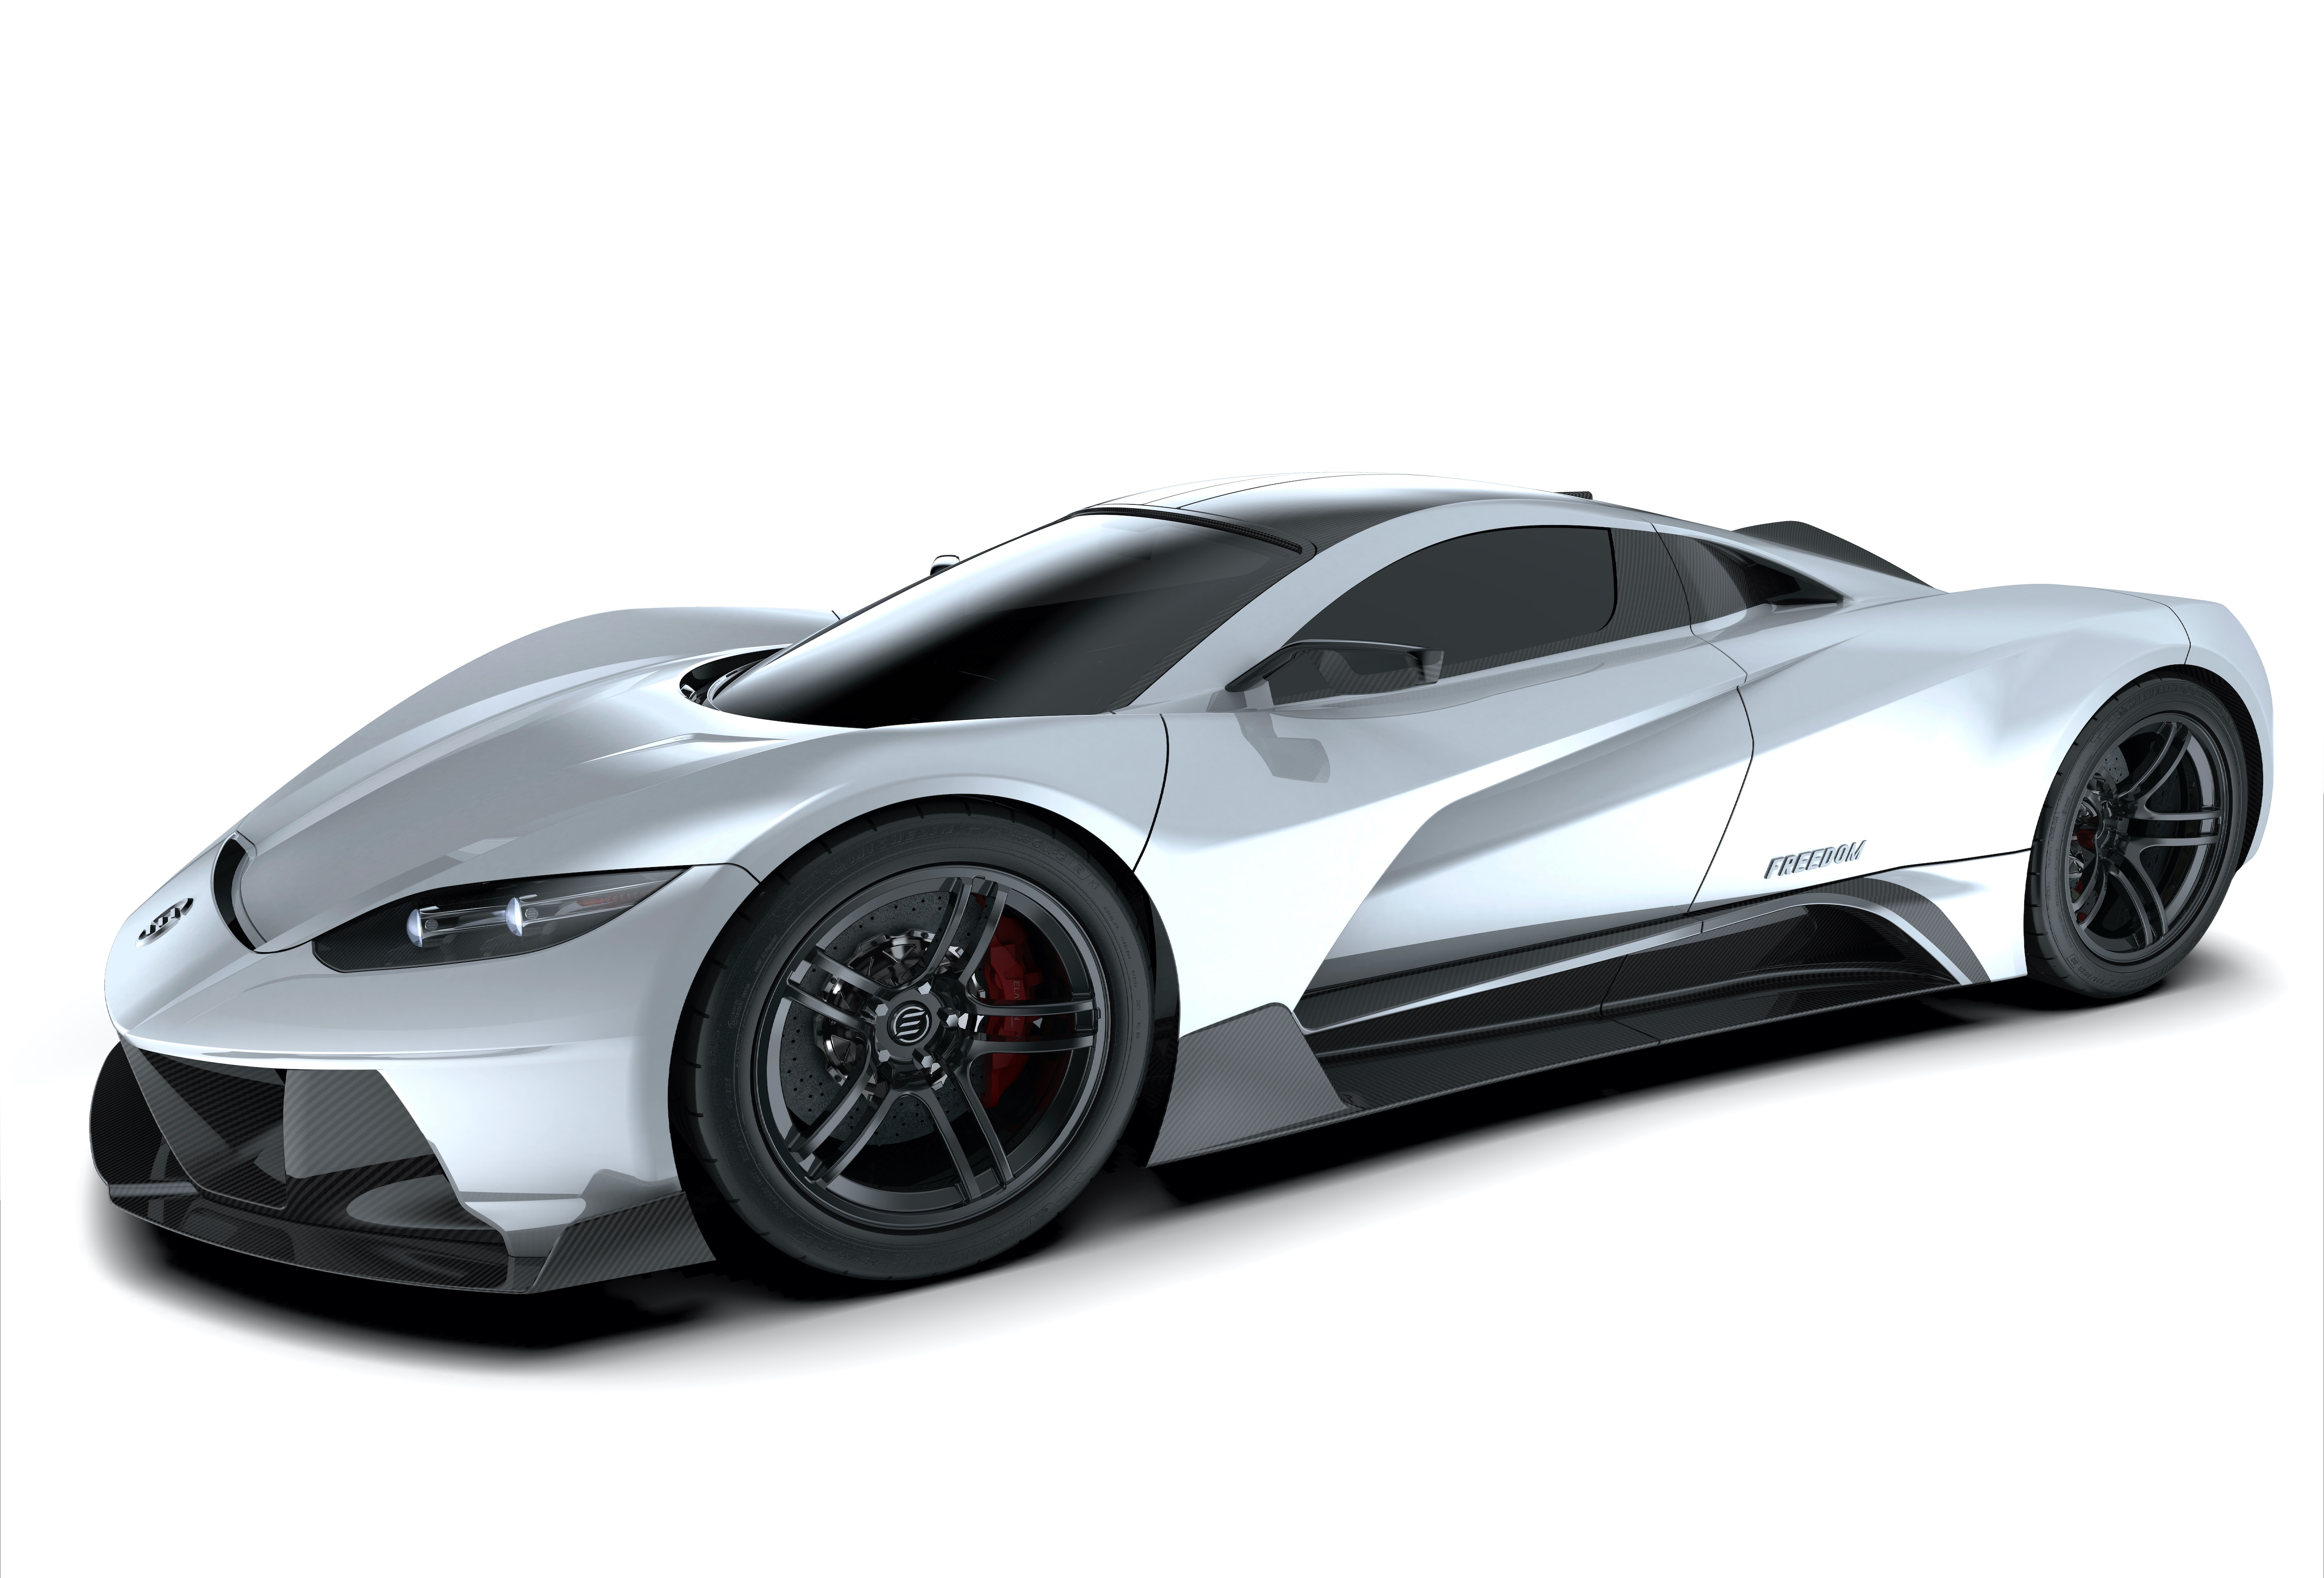 The automobile is extremely lightweight as is evident by the fact that its three-motor version only weighs 1,650 kilos. The car can go upto 482 kms with a fully charged standard battery, but that range increases to 643 kms if the battery is upgraded.